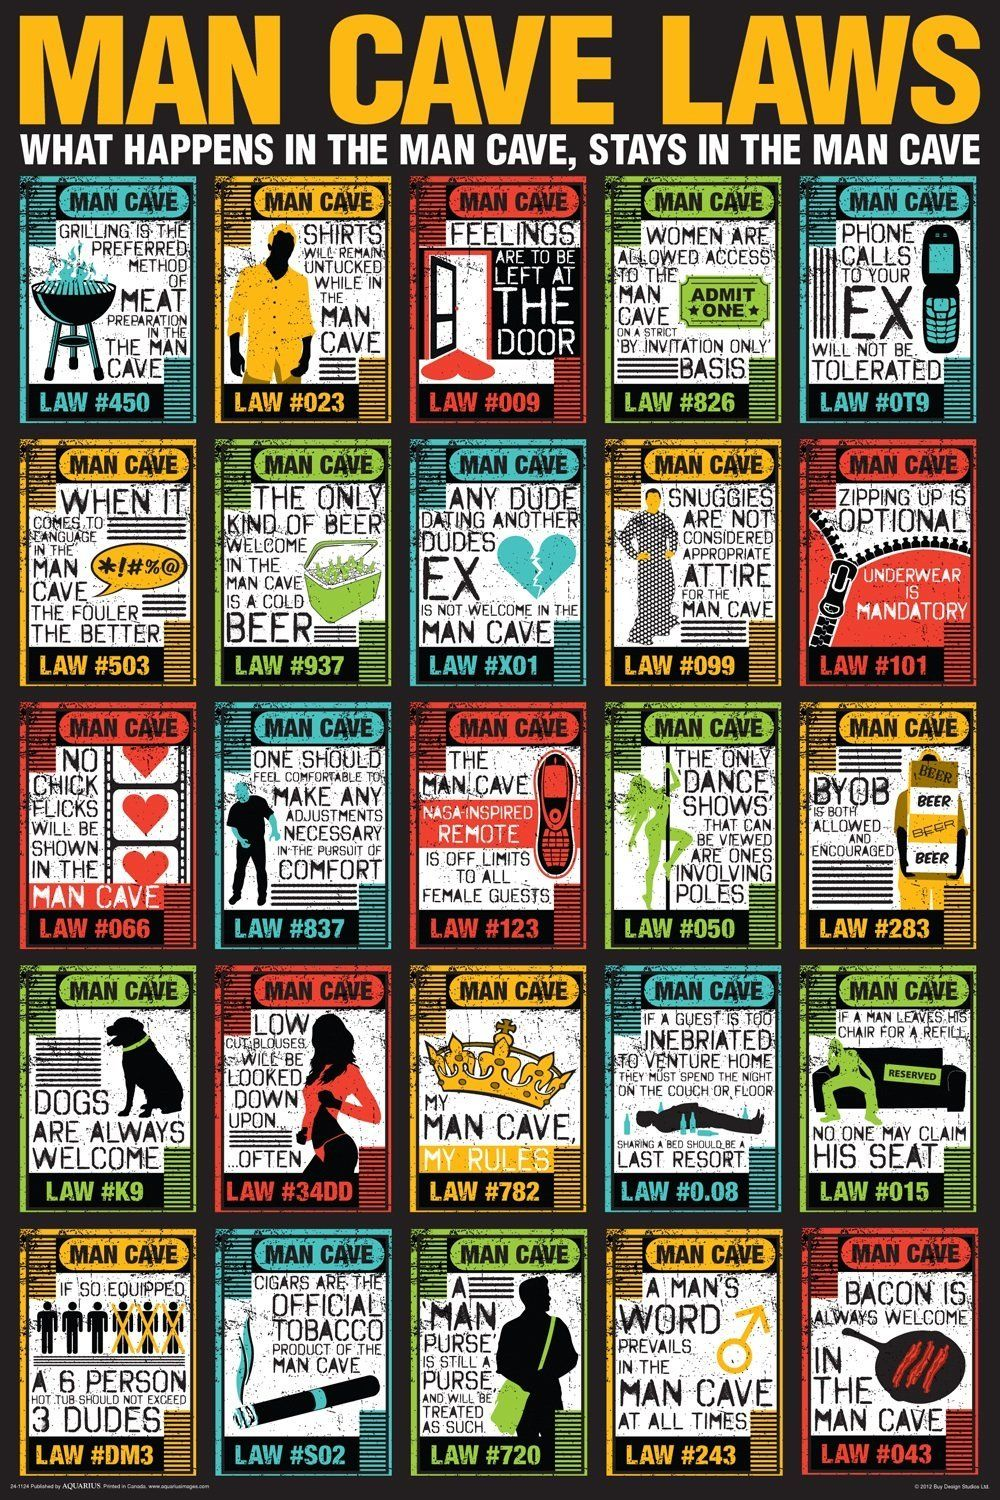 Man Cave Decor For Sale : Man cave laws poster on sale for signs